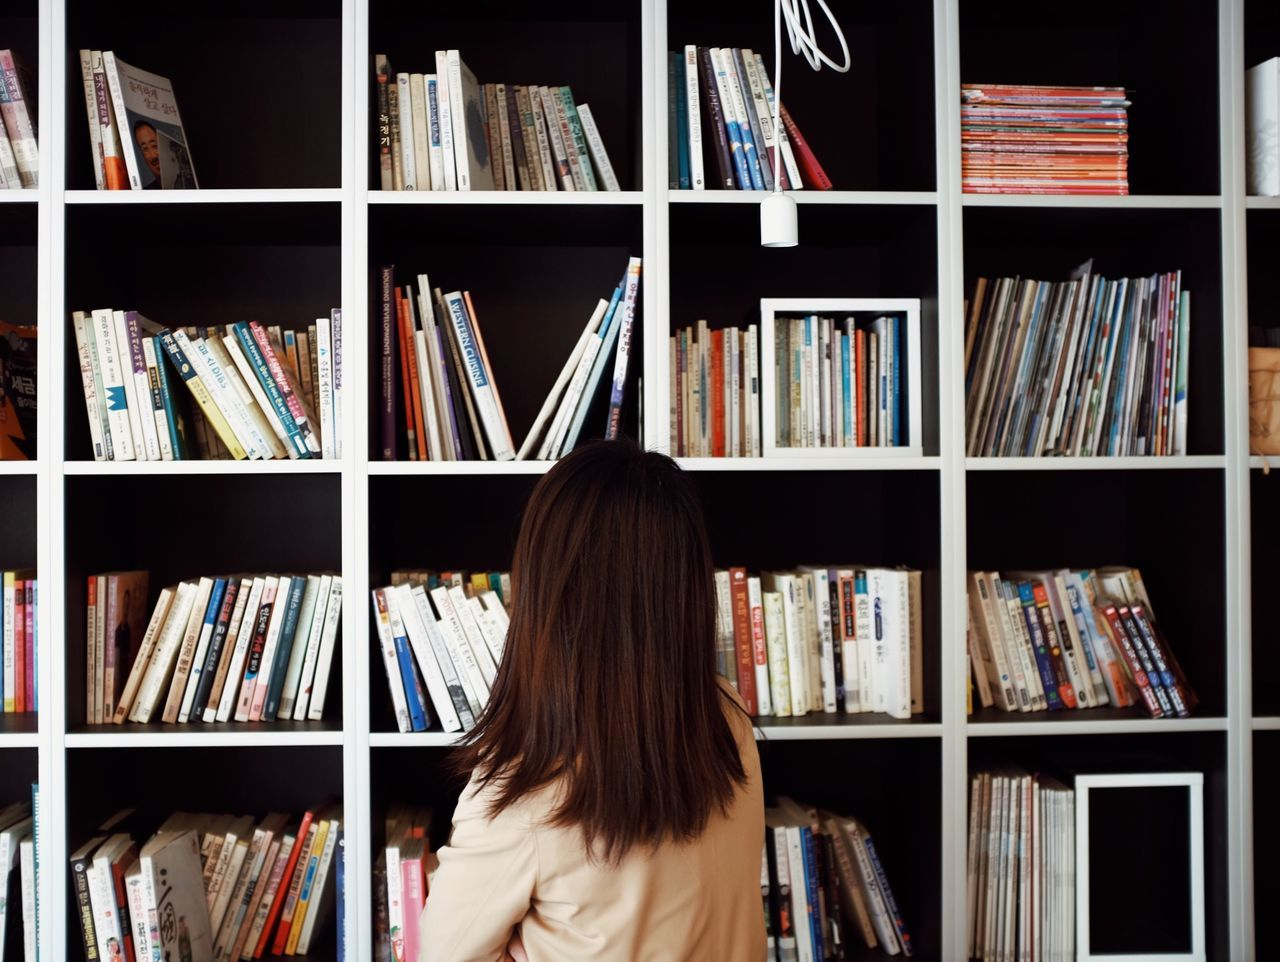 shelf, bookshelf, publication, rear view, book, education, women, large group of objects, one person, arrangement, library, leisure activity, indoors, adult, learning, real people, lifestyles, abundance, choice, hairstyle, literature, order, studying